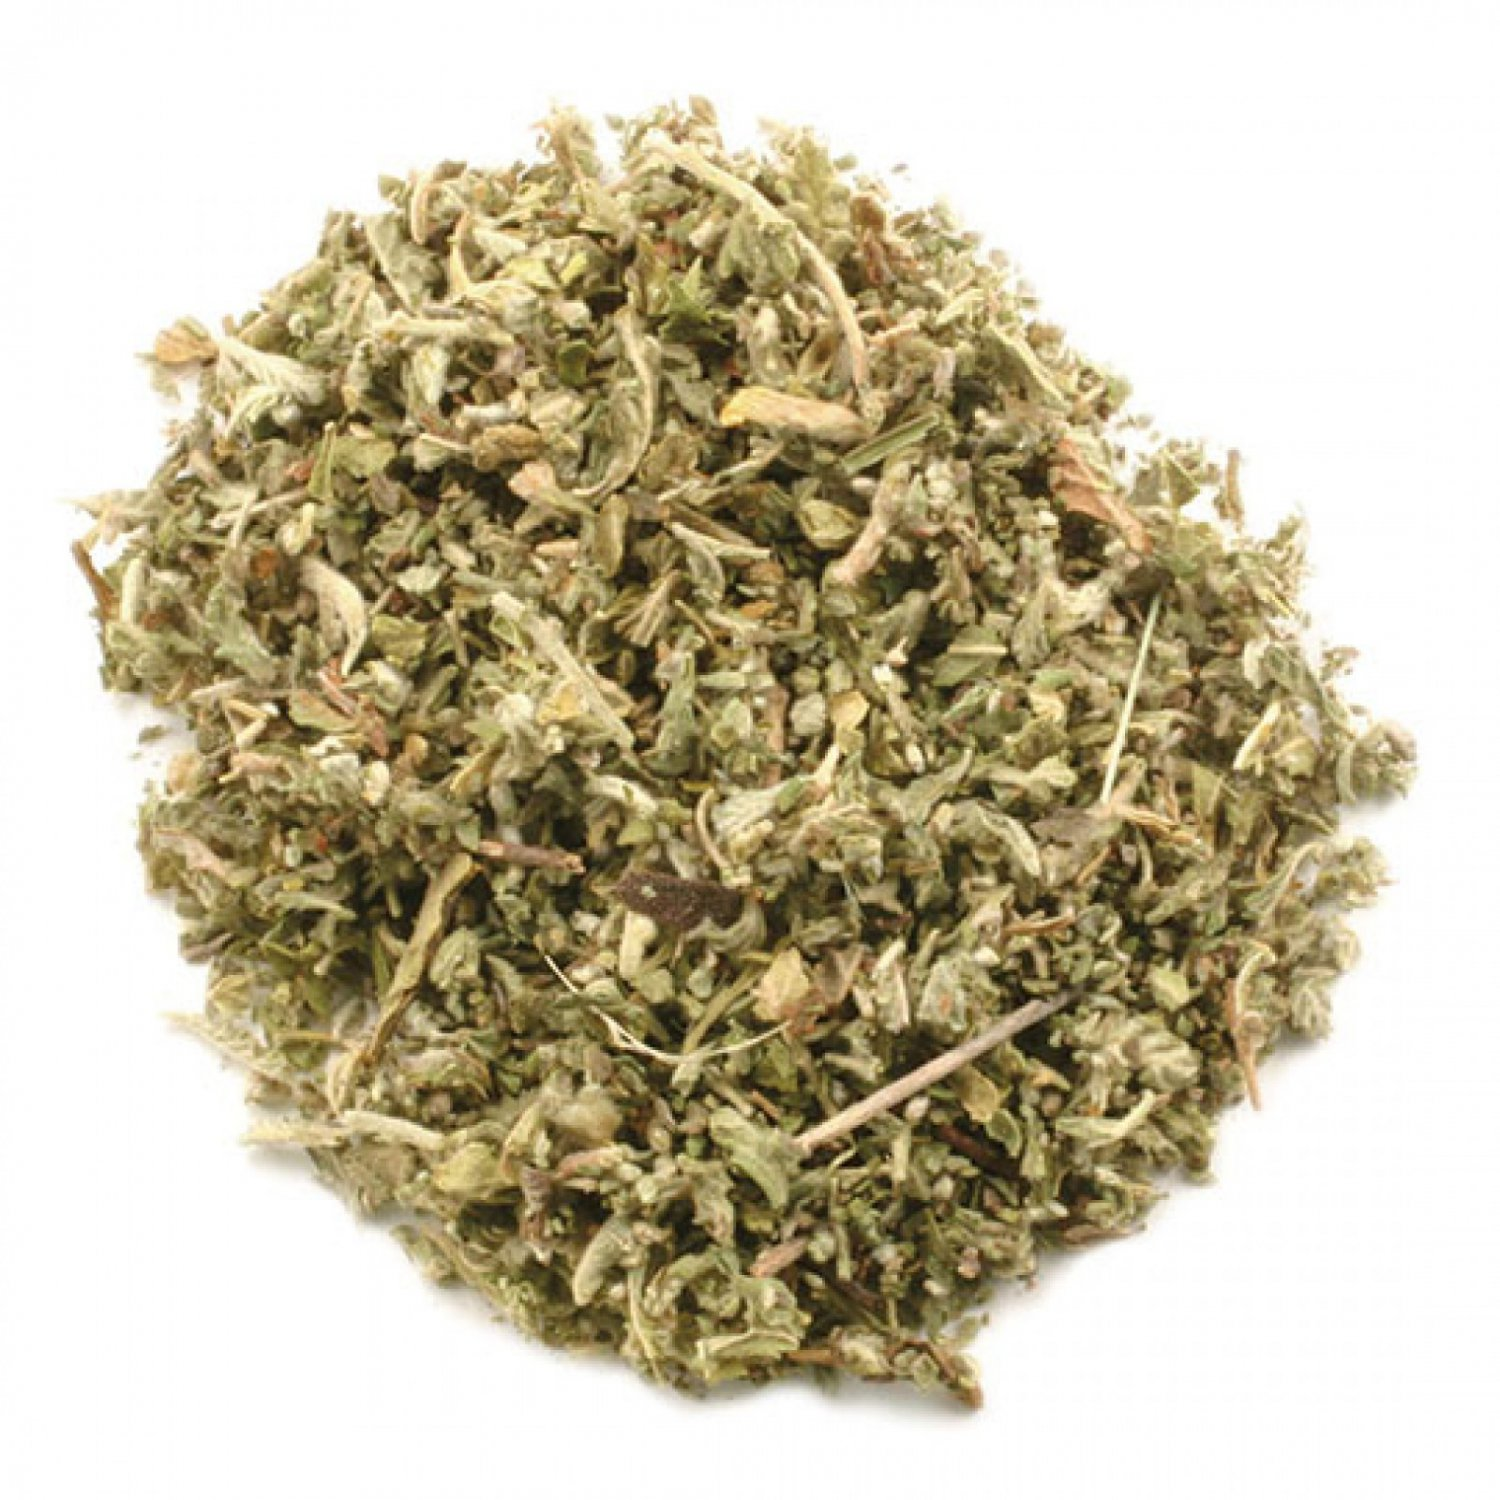 Damiana 20 grams | Wicca | Witchcraft | Pagan | Occult | Spells | Magick